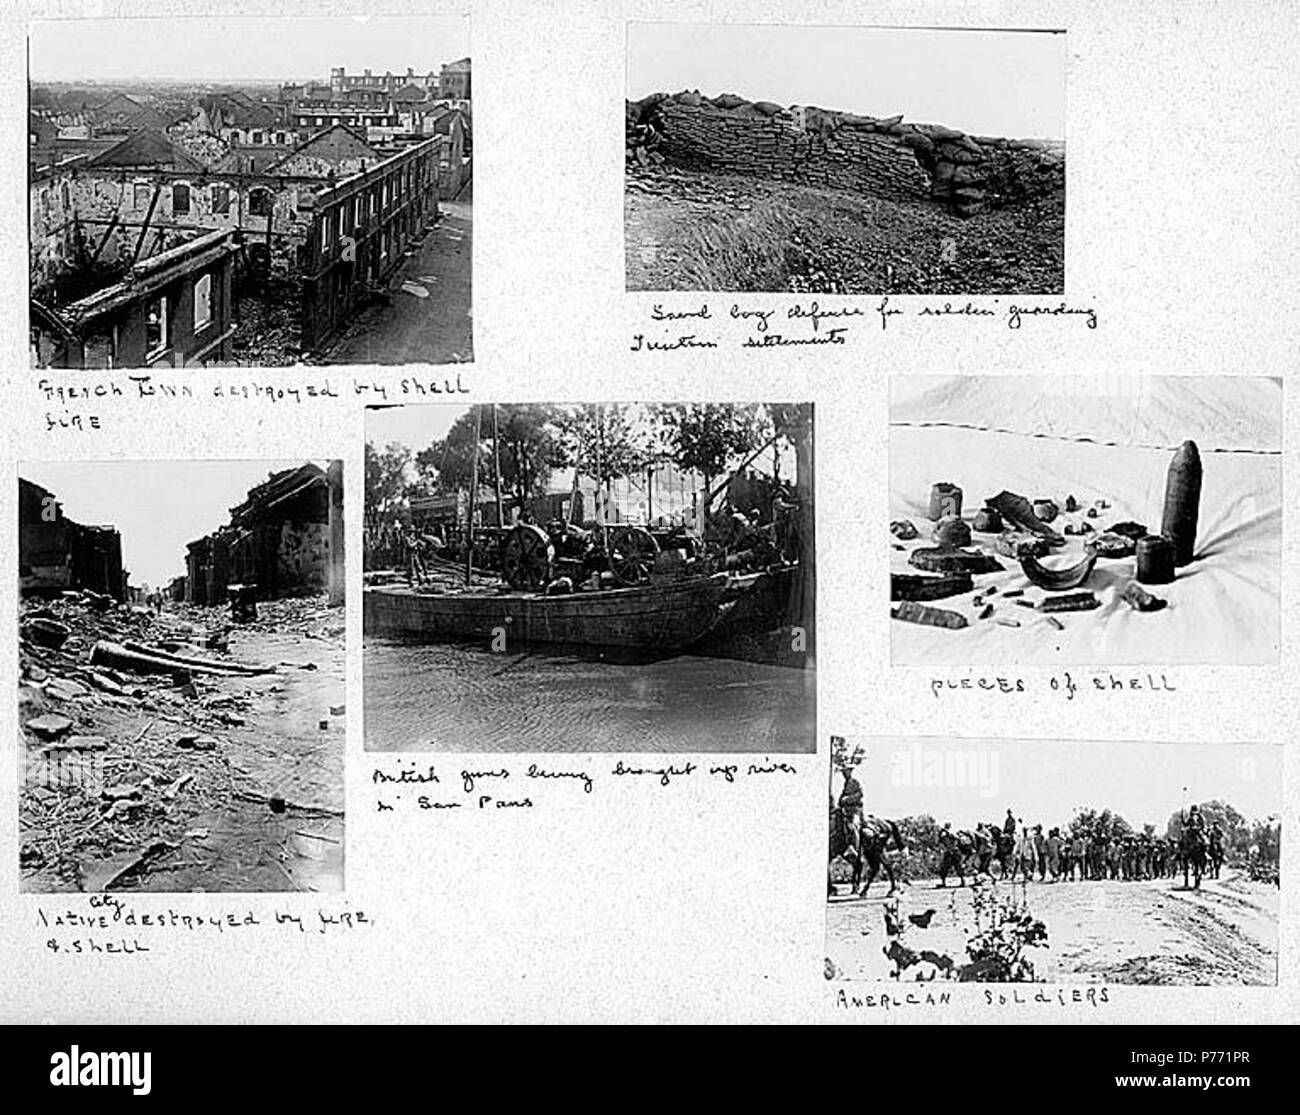 . English: 7.13 Scenes of destruction and military activities, ca. 1899-1901 . English: Captions on album page: French town destroyed by shell fire; Sand bag defense for soldiers guarding Tien Tsin settlements; Native city destroyed by fire and shell; British guns being brought up river in sam pans; Pieces of shell; American soldiers . PH Coll 241.B13a-f Subjects (LCTGM): War damage--China; Ethnic neighborhoods--China; Artillery (Weaponry)--British--China; Sampans--China; Shells (Ammunition); Soldiers--American--China Subjects (LCSH): China--History--Boxer Rebellion, 1899-1901--Destruction and - Stock Image